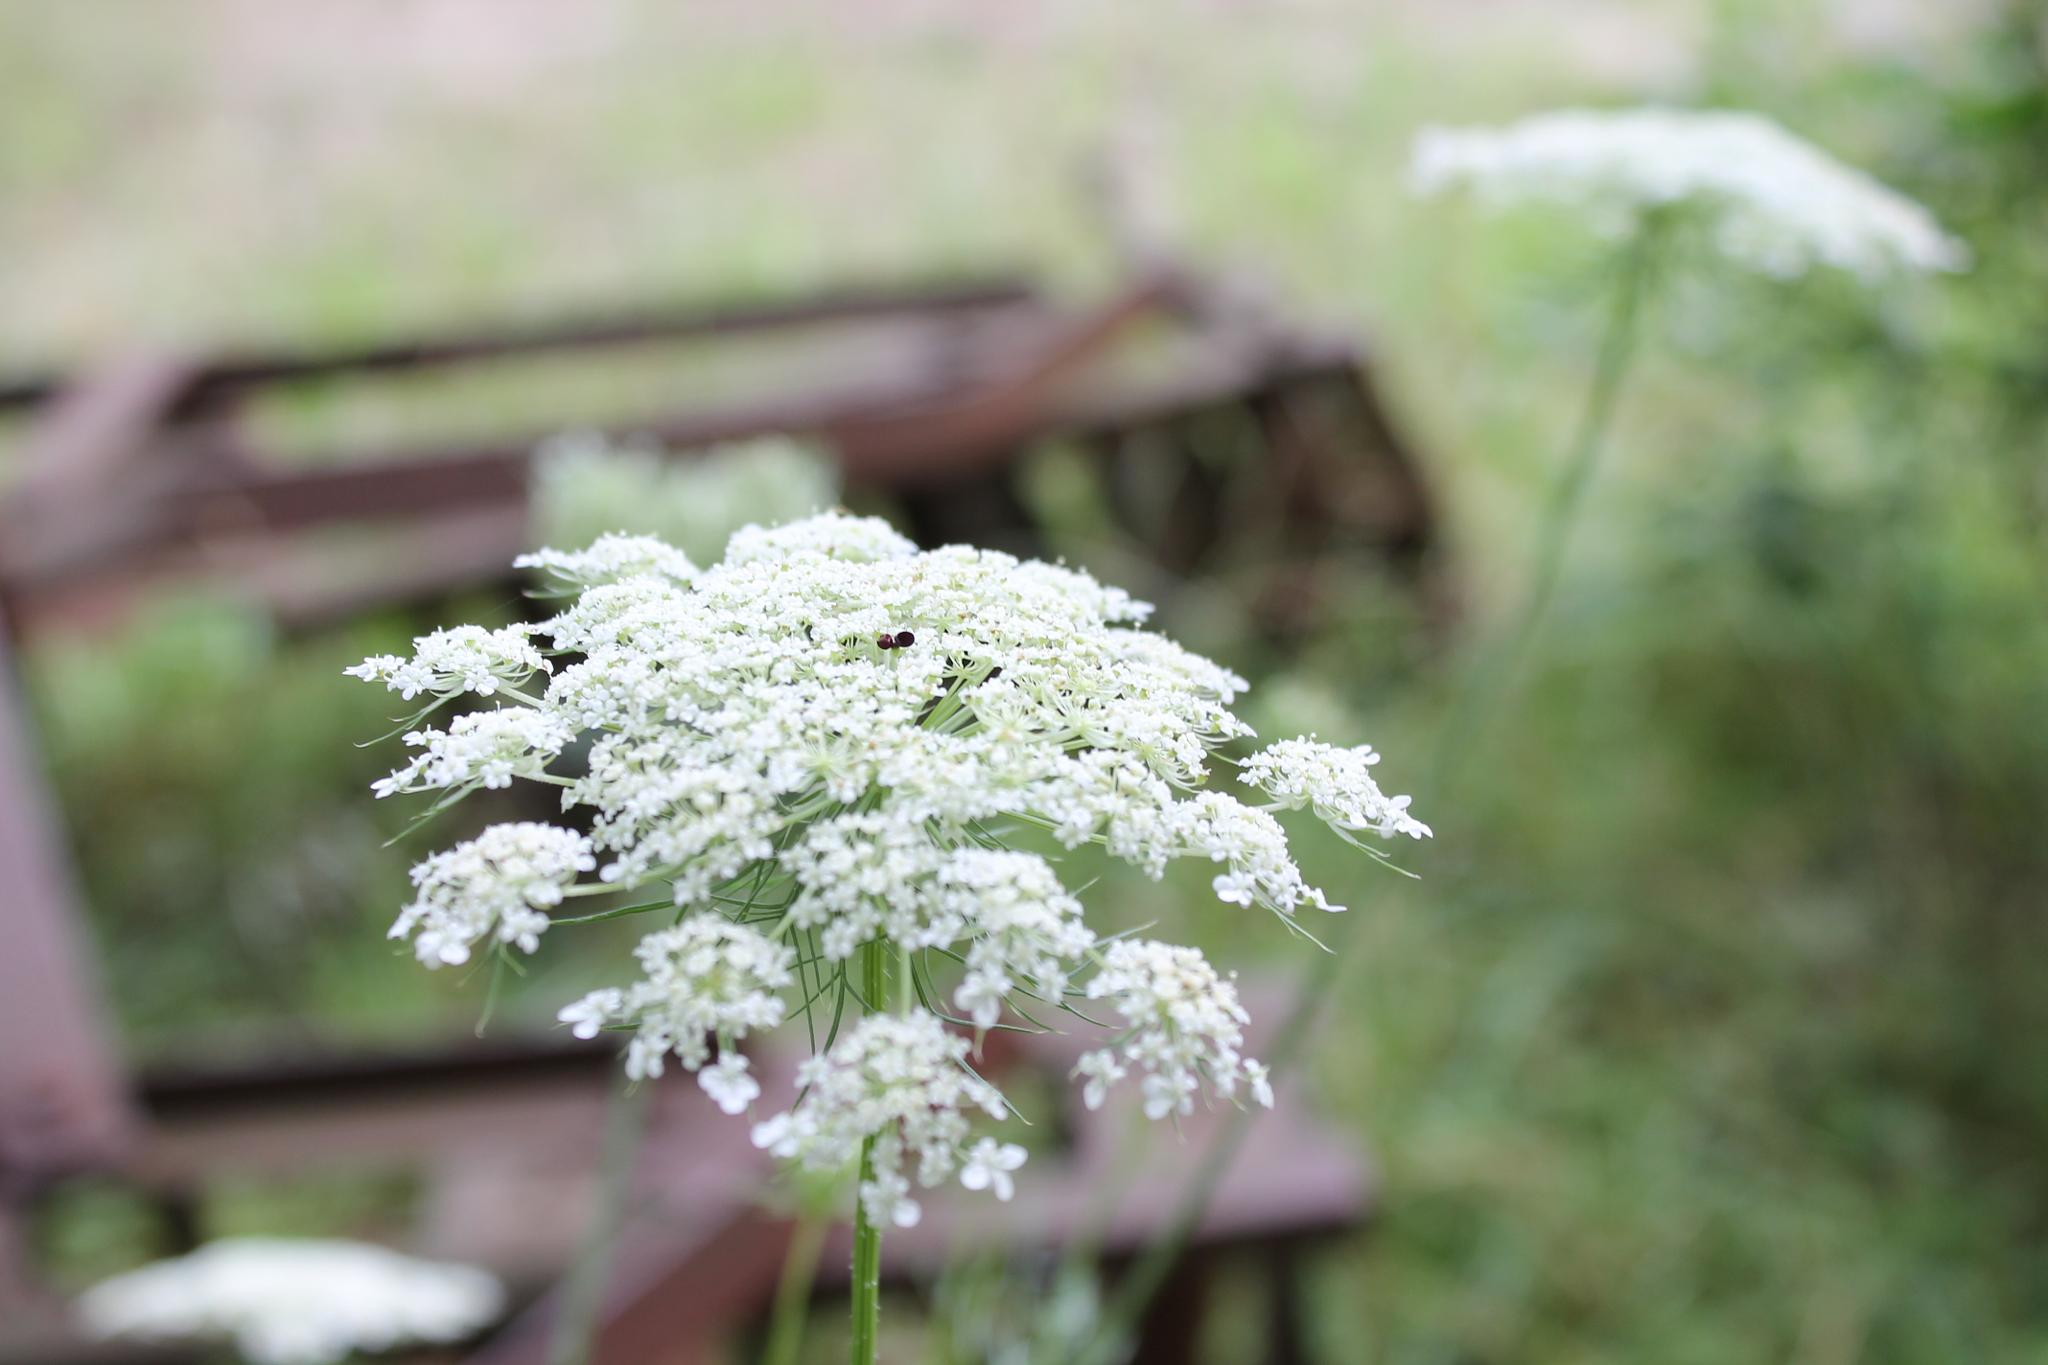 Queen Anne's Lace and Farm equipment by JoJoK